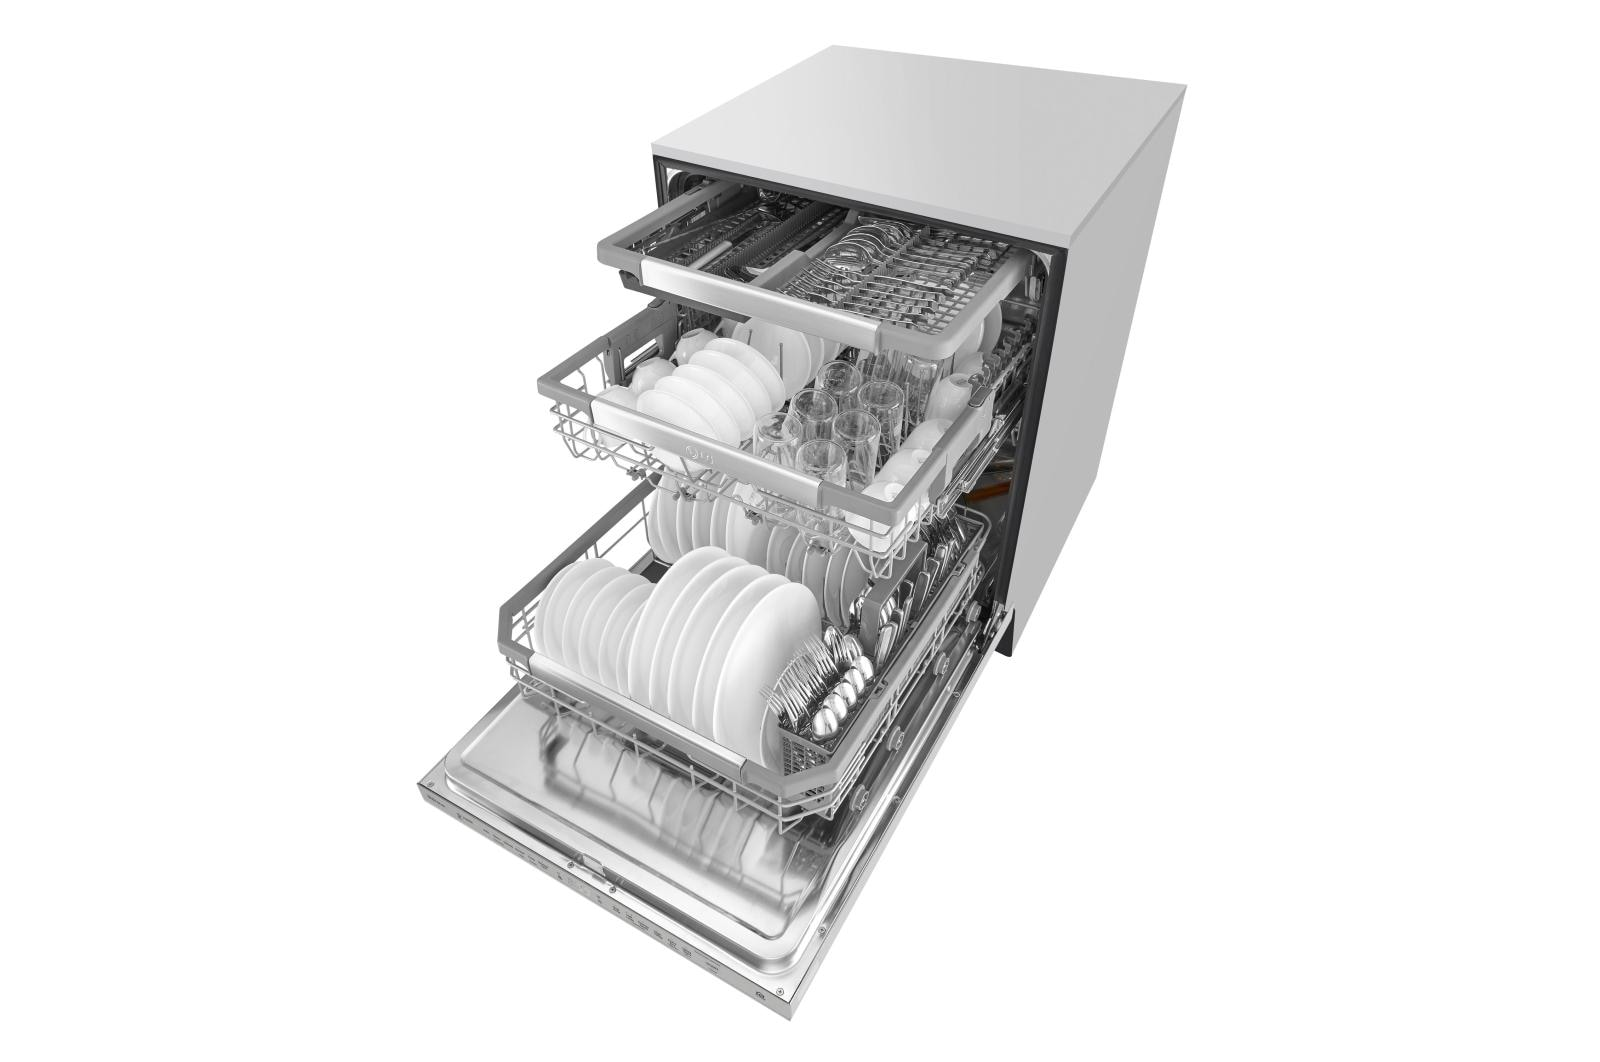 LG LDTST Save Up To On The LG LDTST Today LG USA - Abt dishwasher